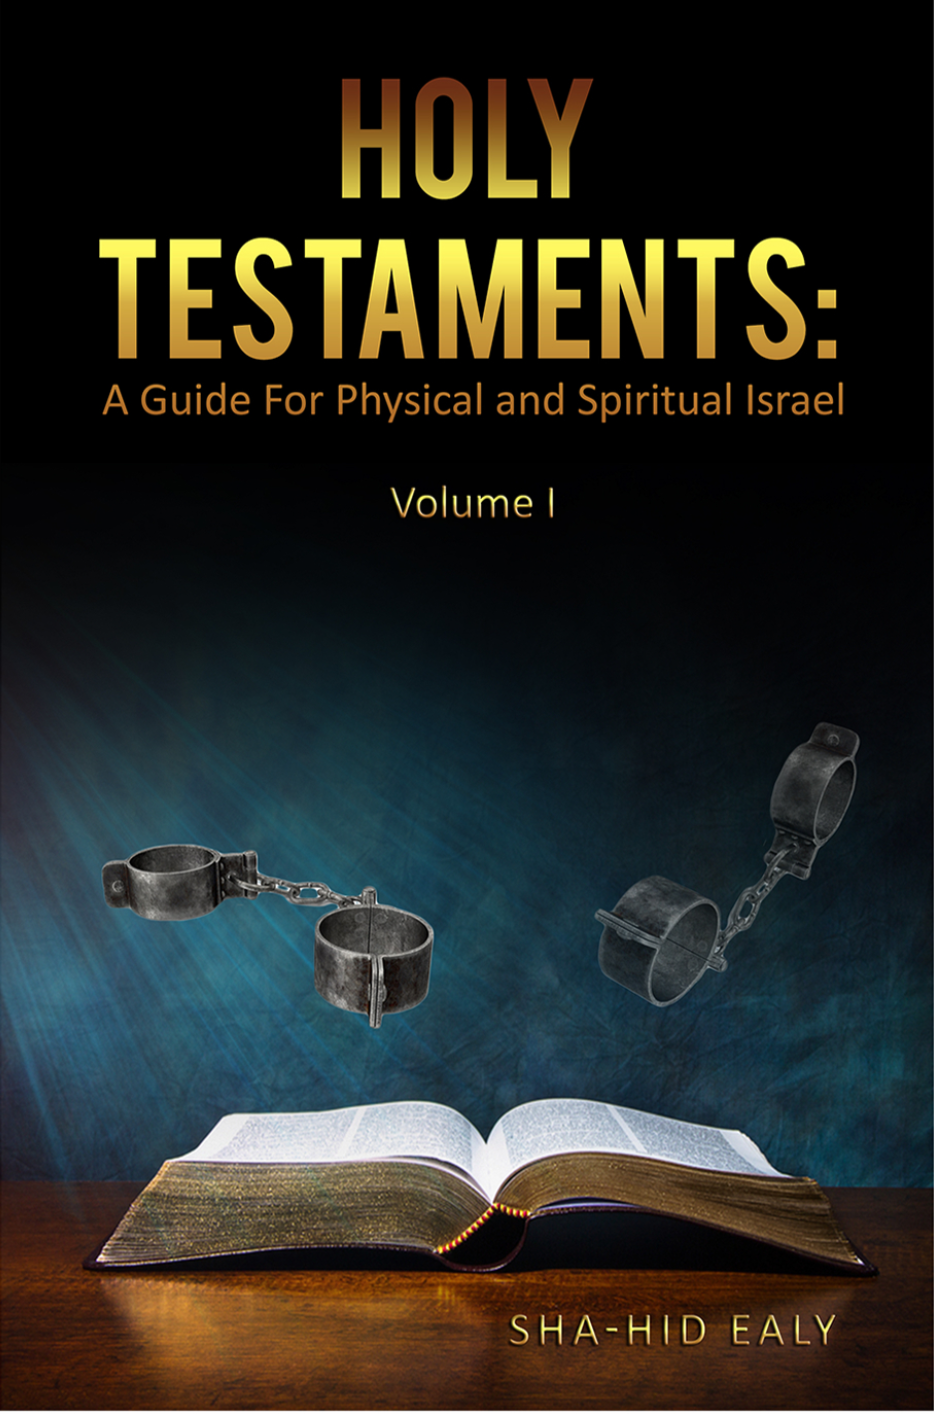 HOLY TESTAMENTS: A GUIDE FOR PHYSICAL AND SPIRITUAL ISRAEL VOL. I